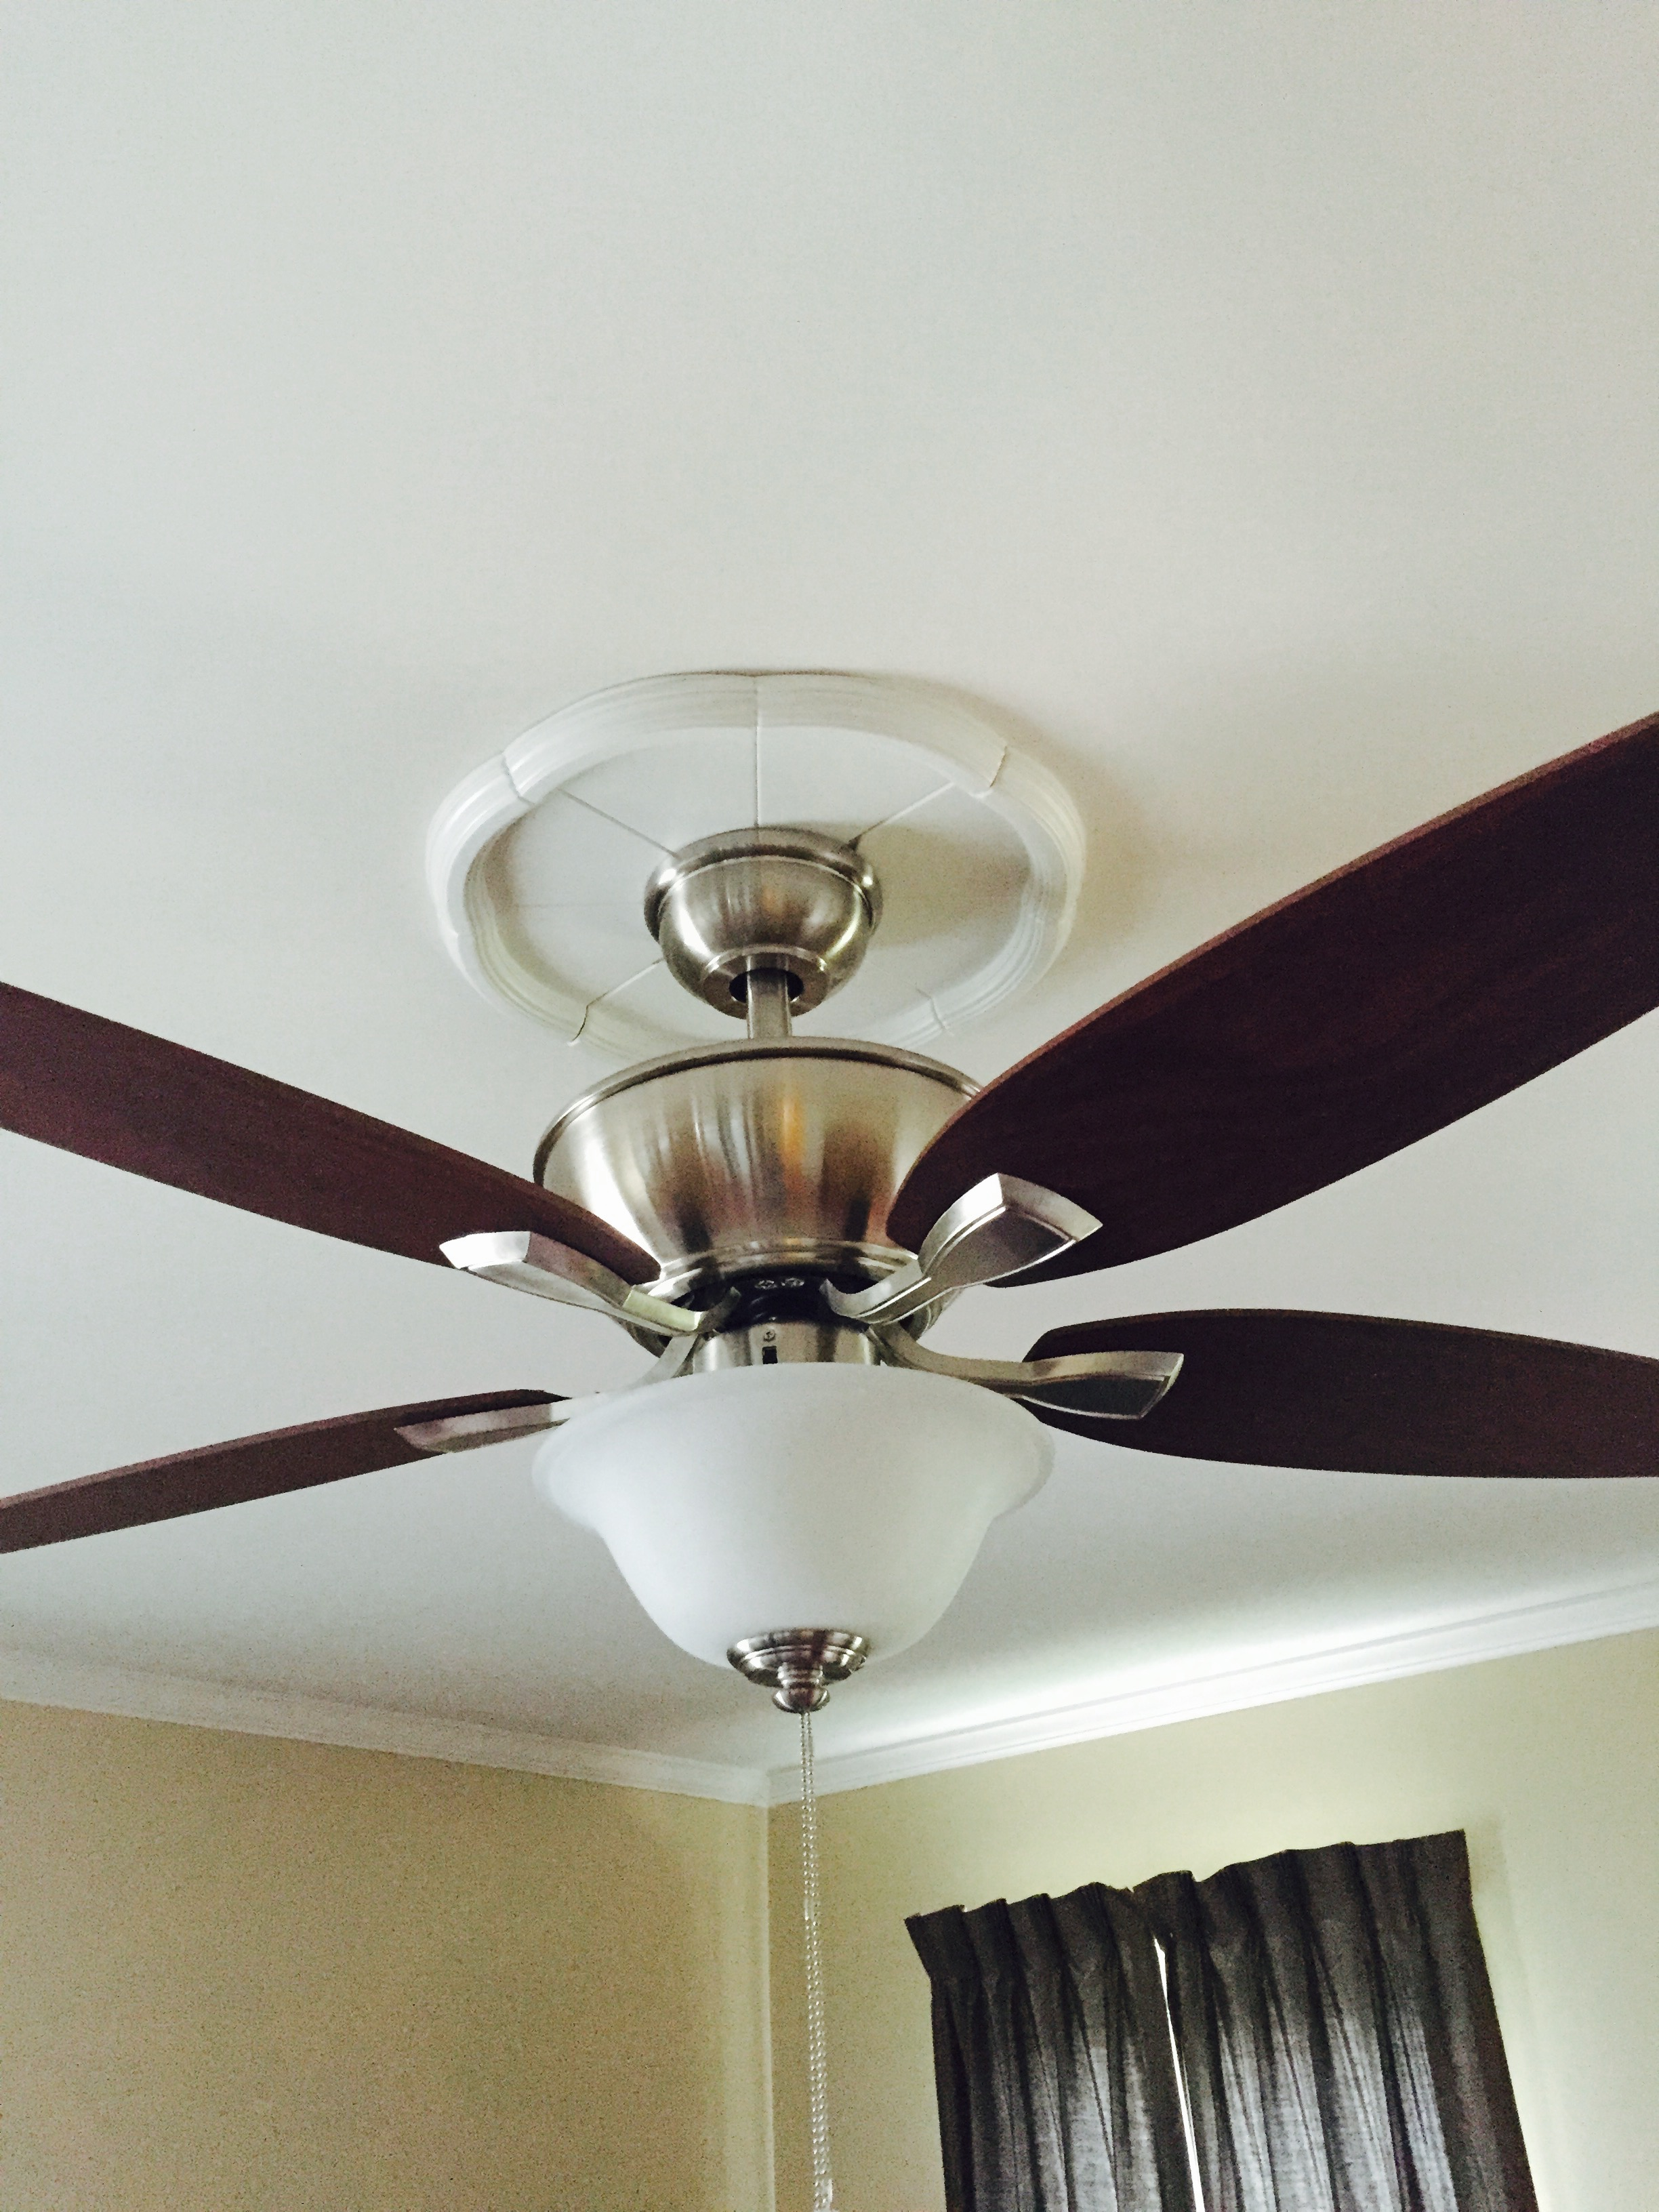 Fan installation electrician services philadelphia pa ceiling fan installation mozeypictures